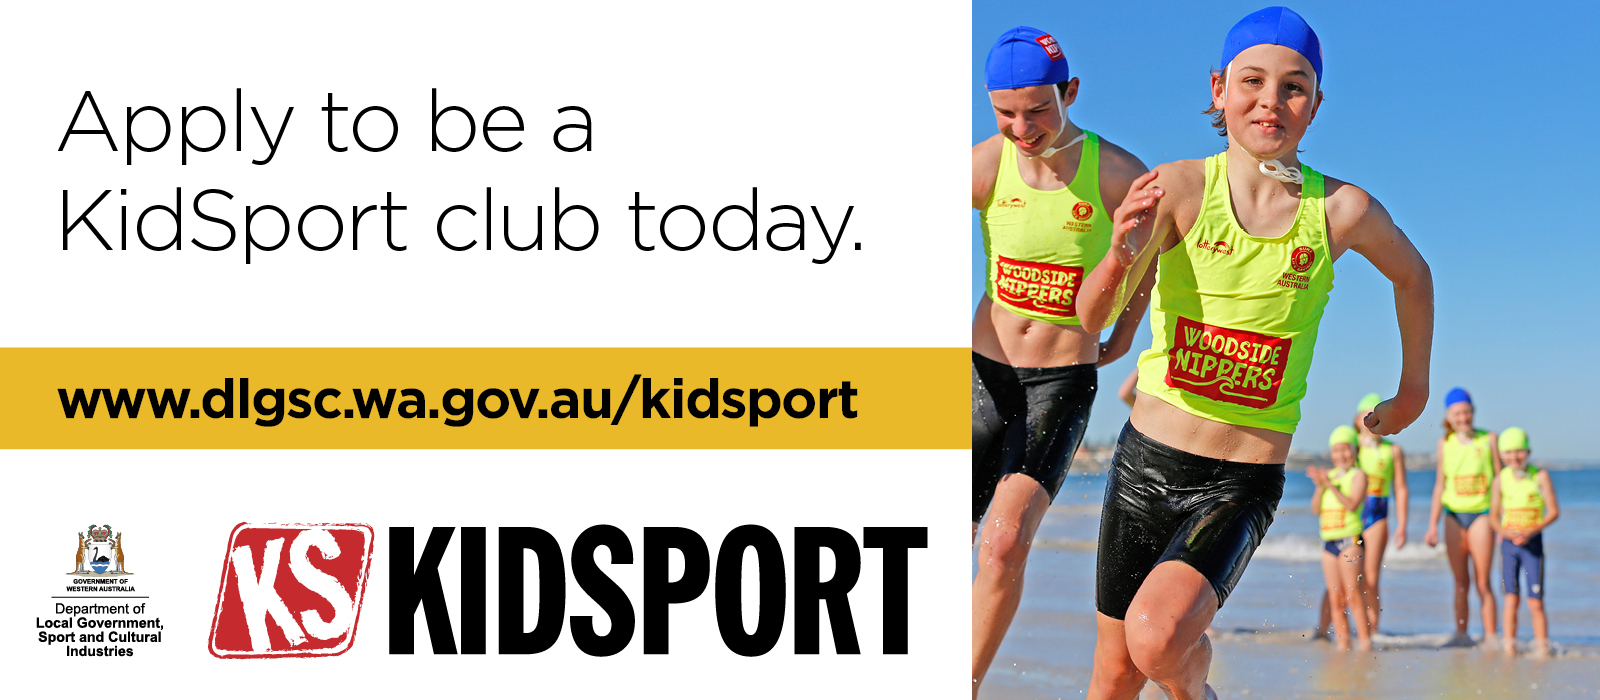 KidSport website images Apply to be a KidSport club today